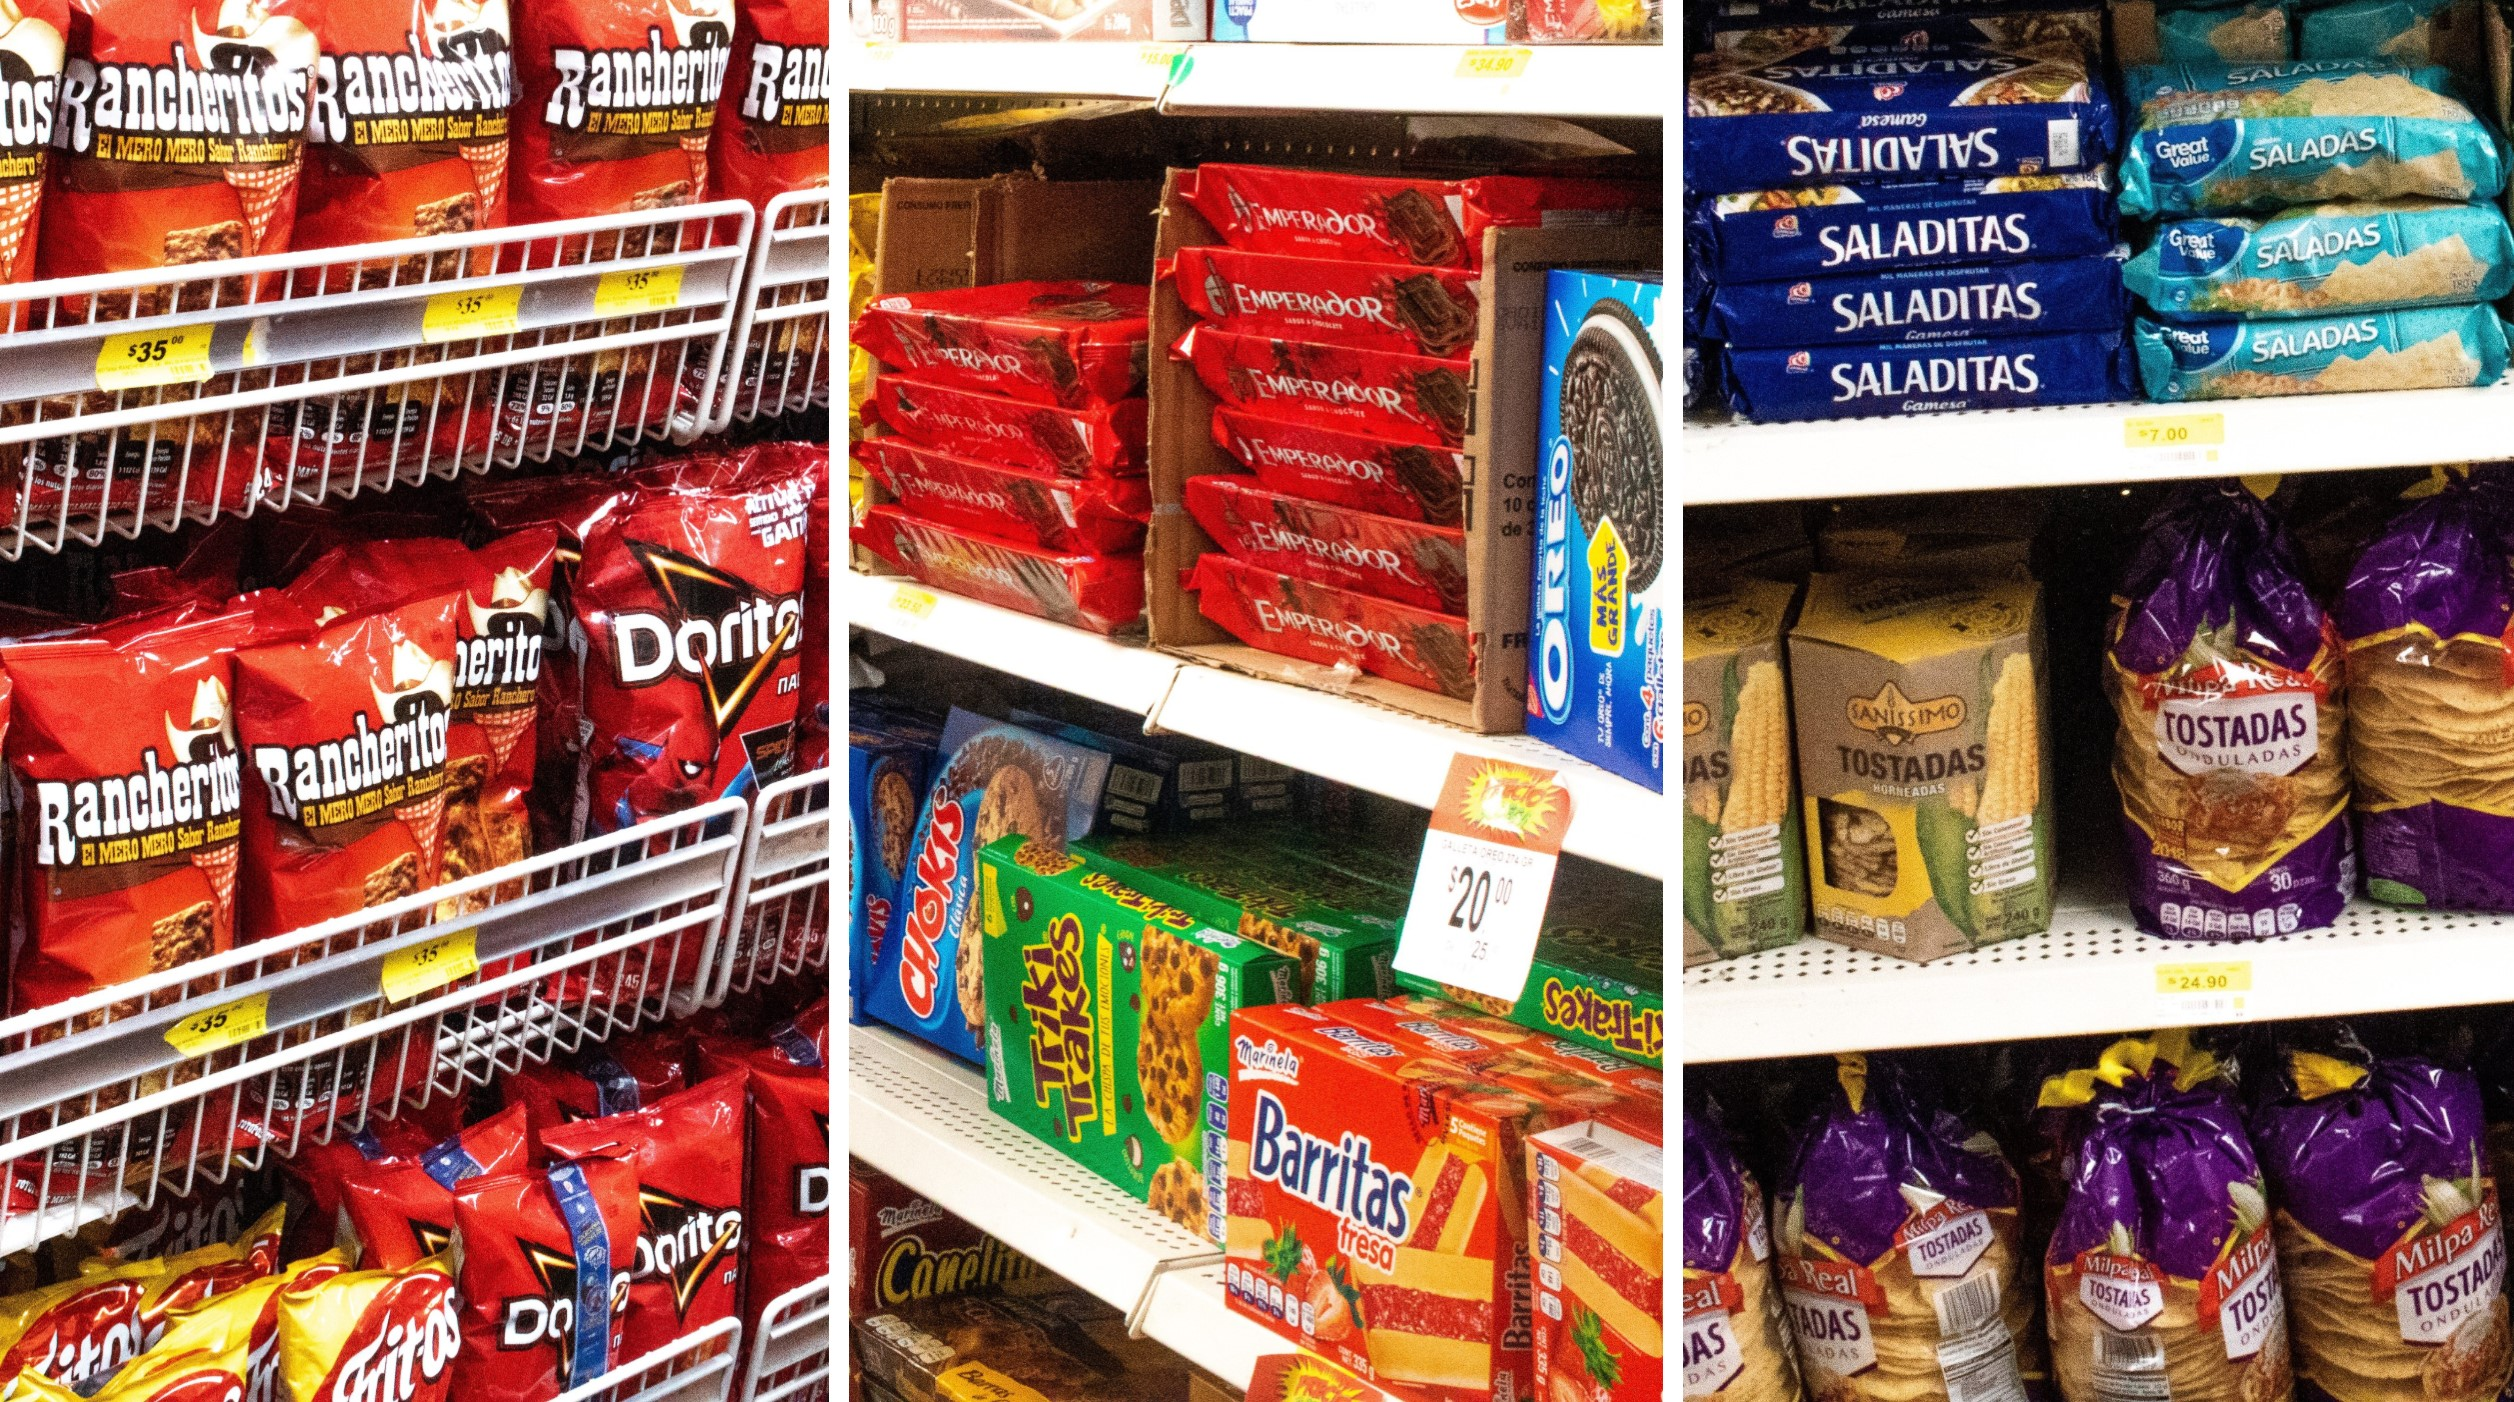 In a small food shop in San Vicente, a low-income area, snacks high in salt and sugar line the shelves. (Photo: Emma Orchardson/CIMMYT)